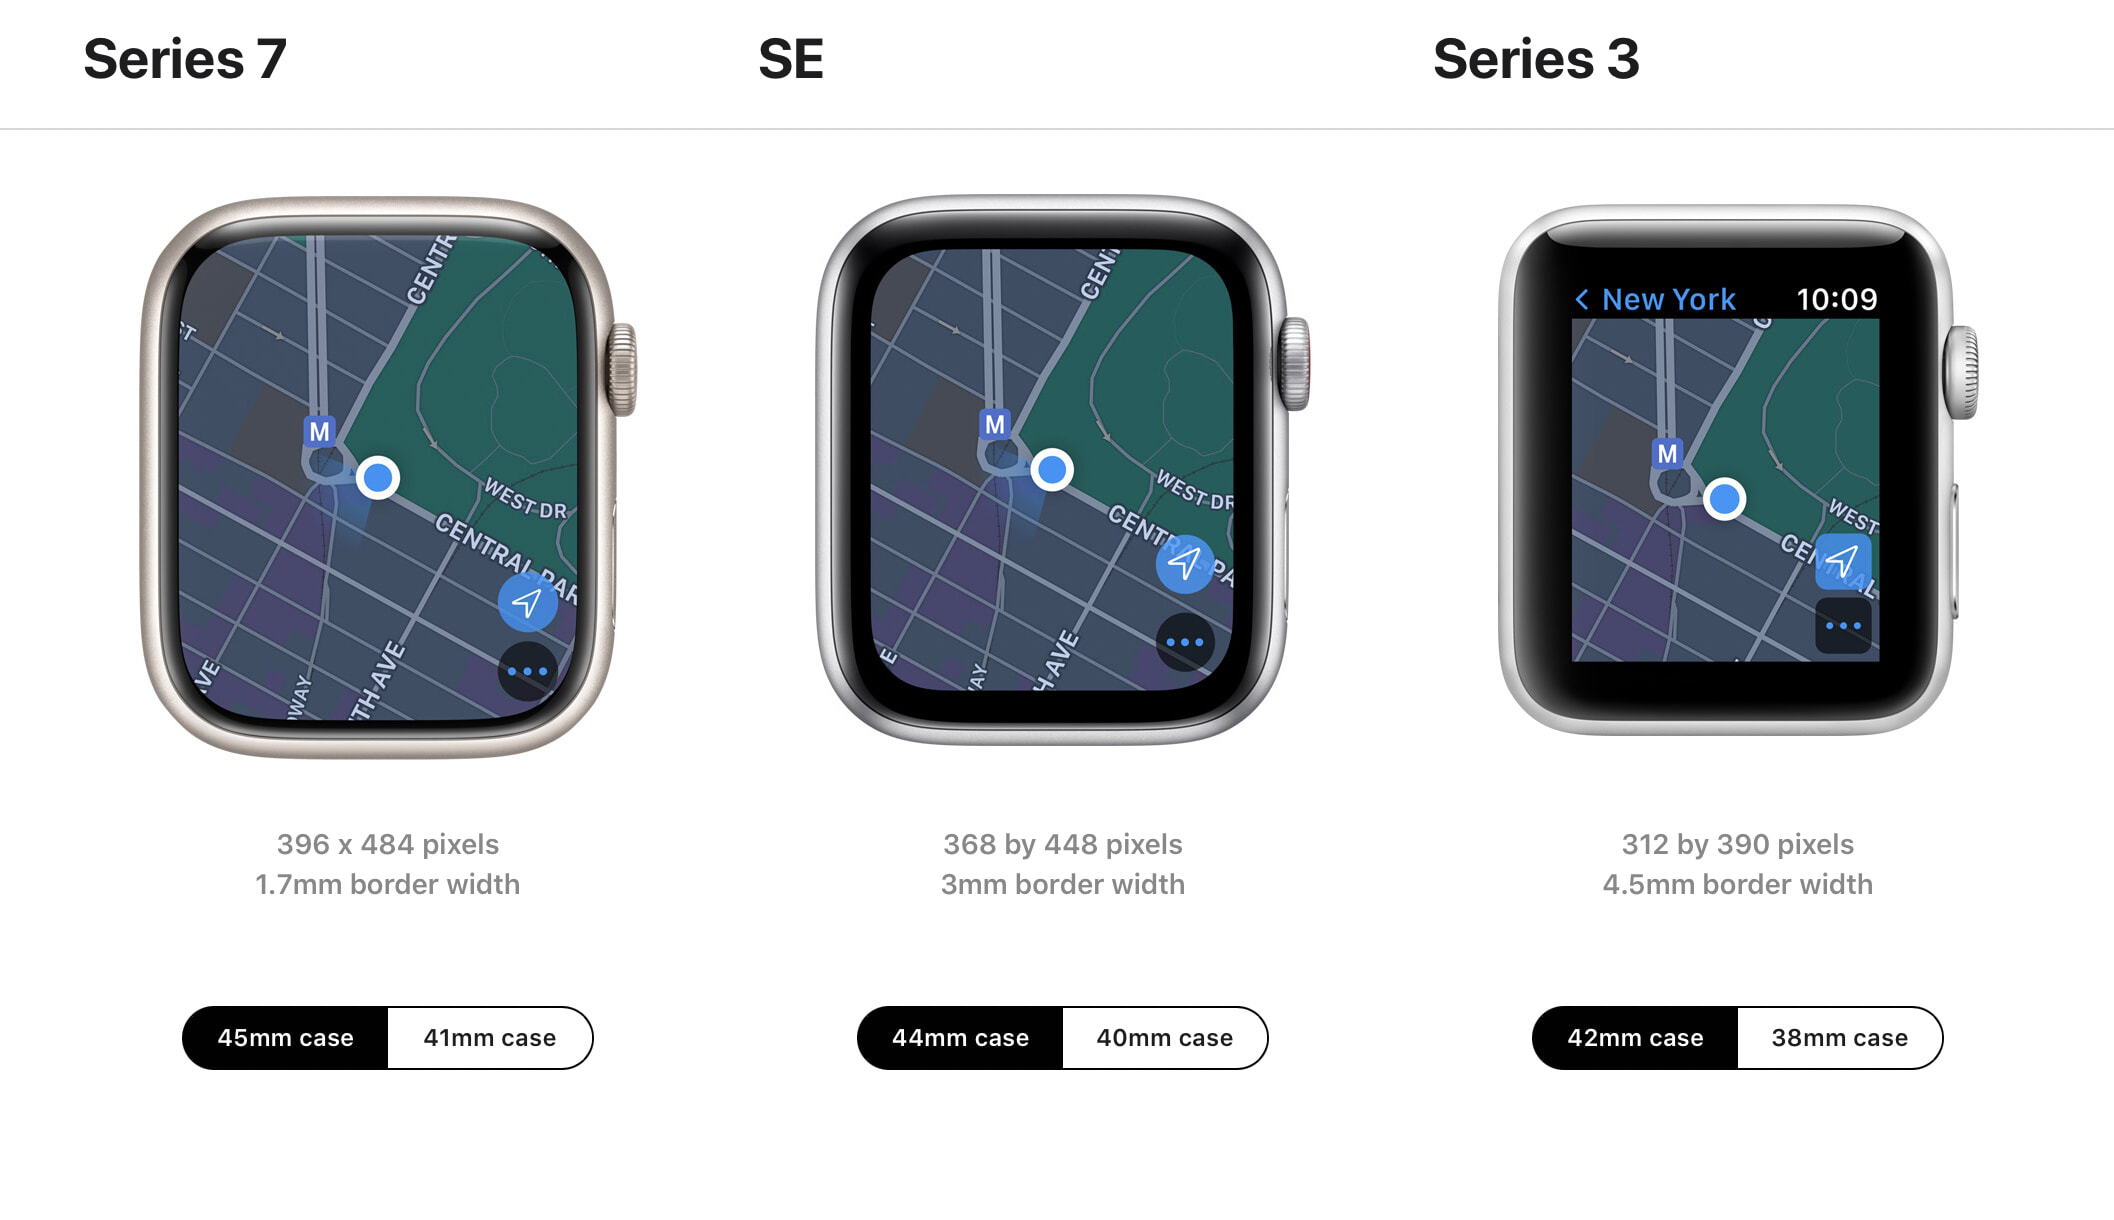 Screenshot from Apple's Apple Watch Compare page, showing the Series 7, SE, and Series 3 watches side-by-side, all of them displaying the Maps app.